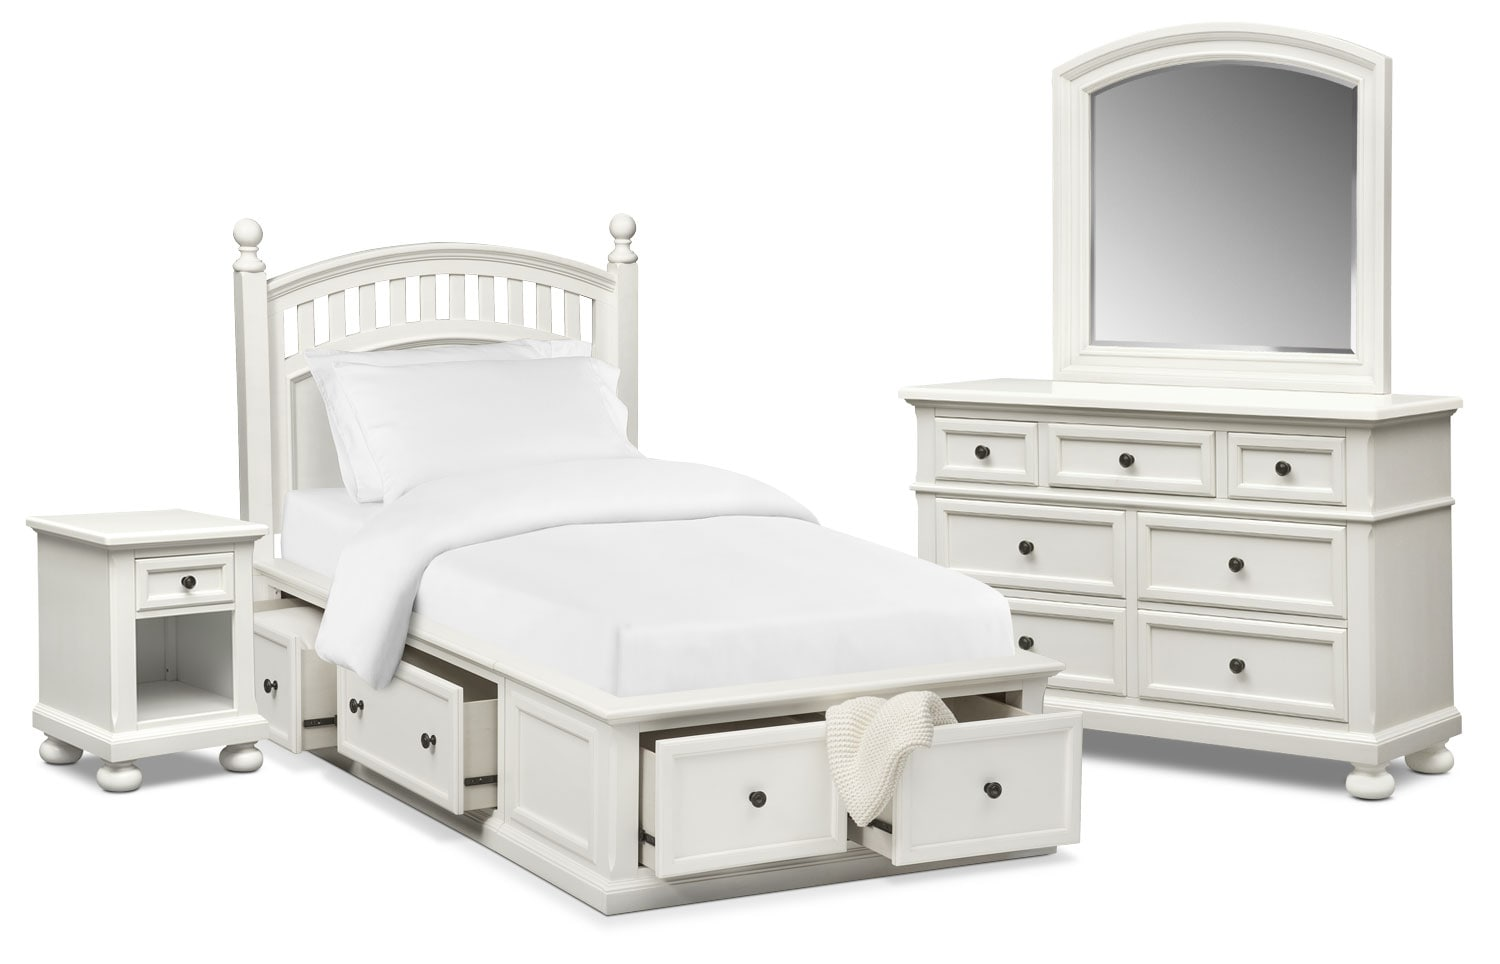 Hanover Youth 6-Piece Twin Poster Bedroom Set with Storage - White